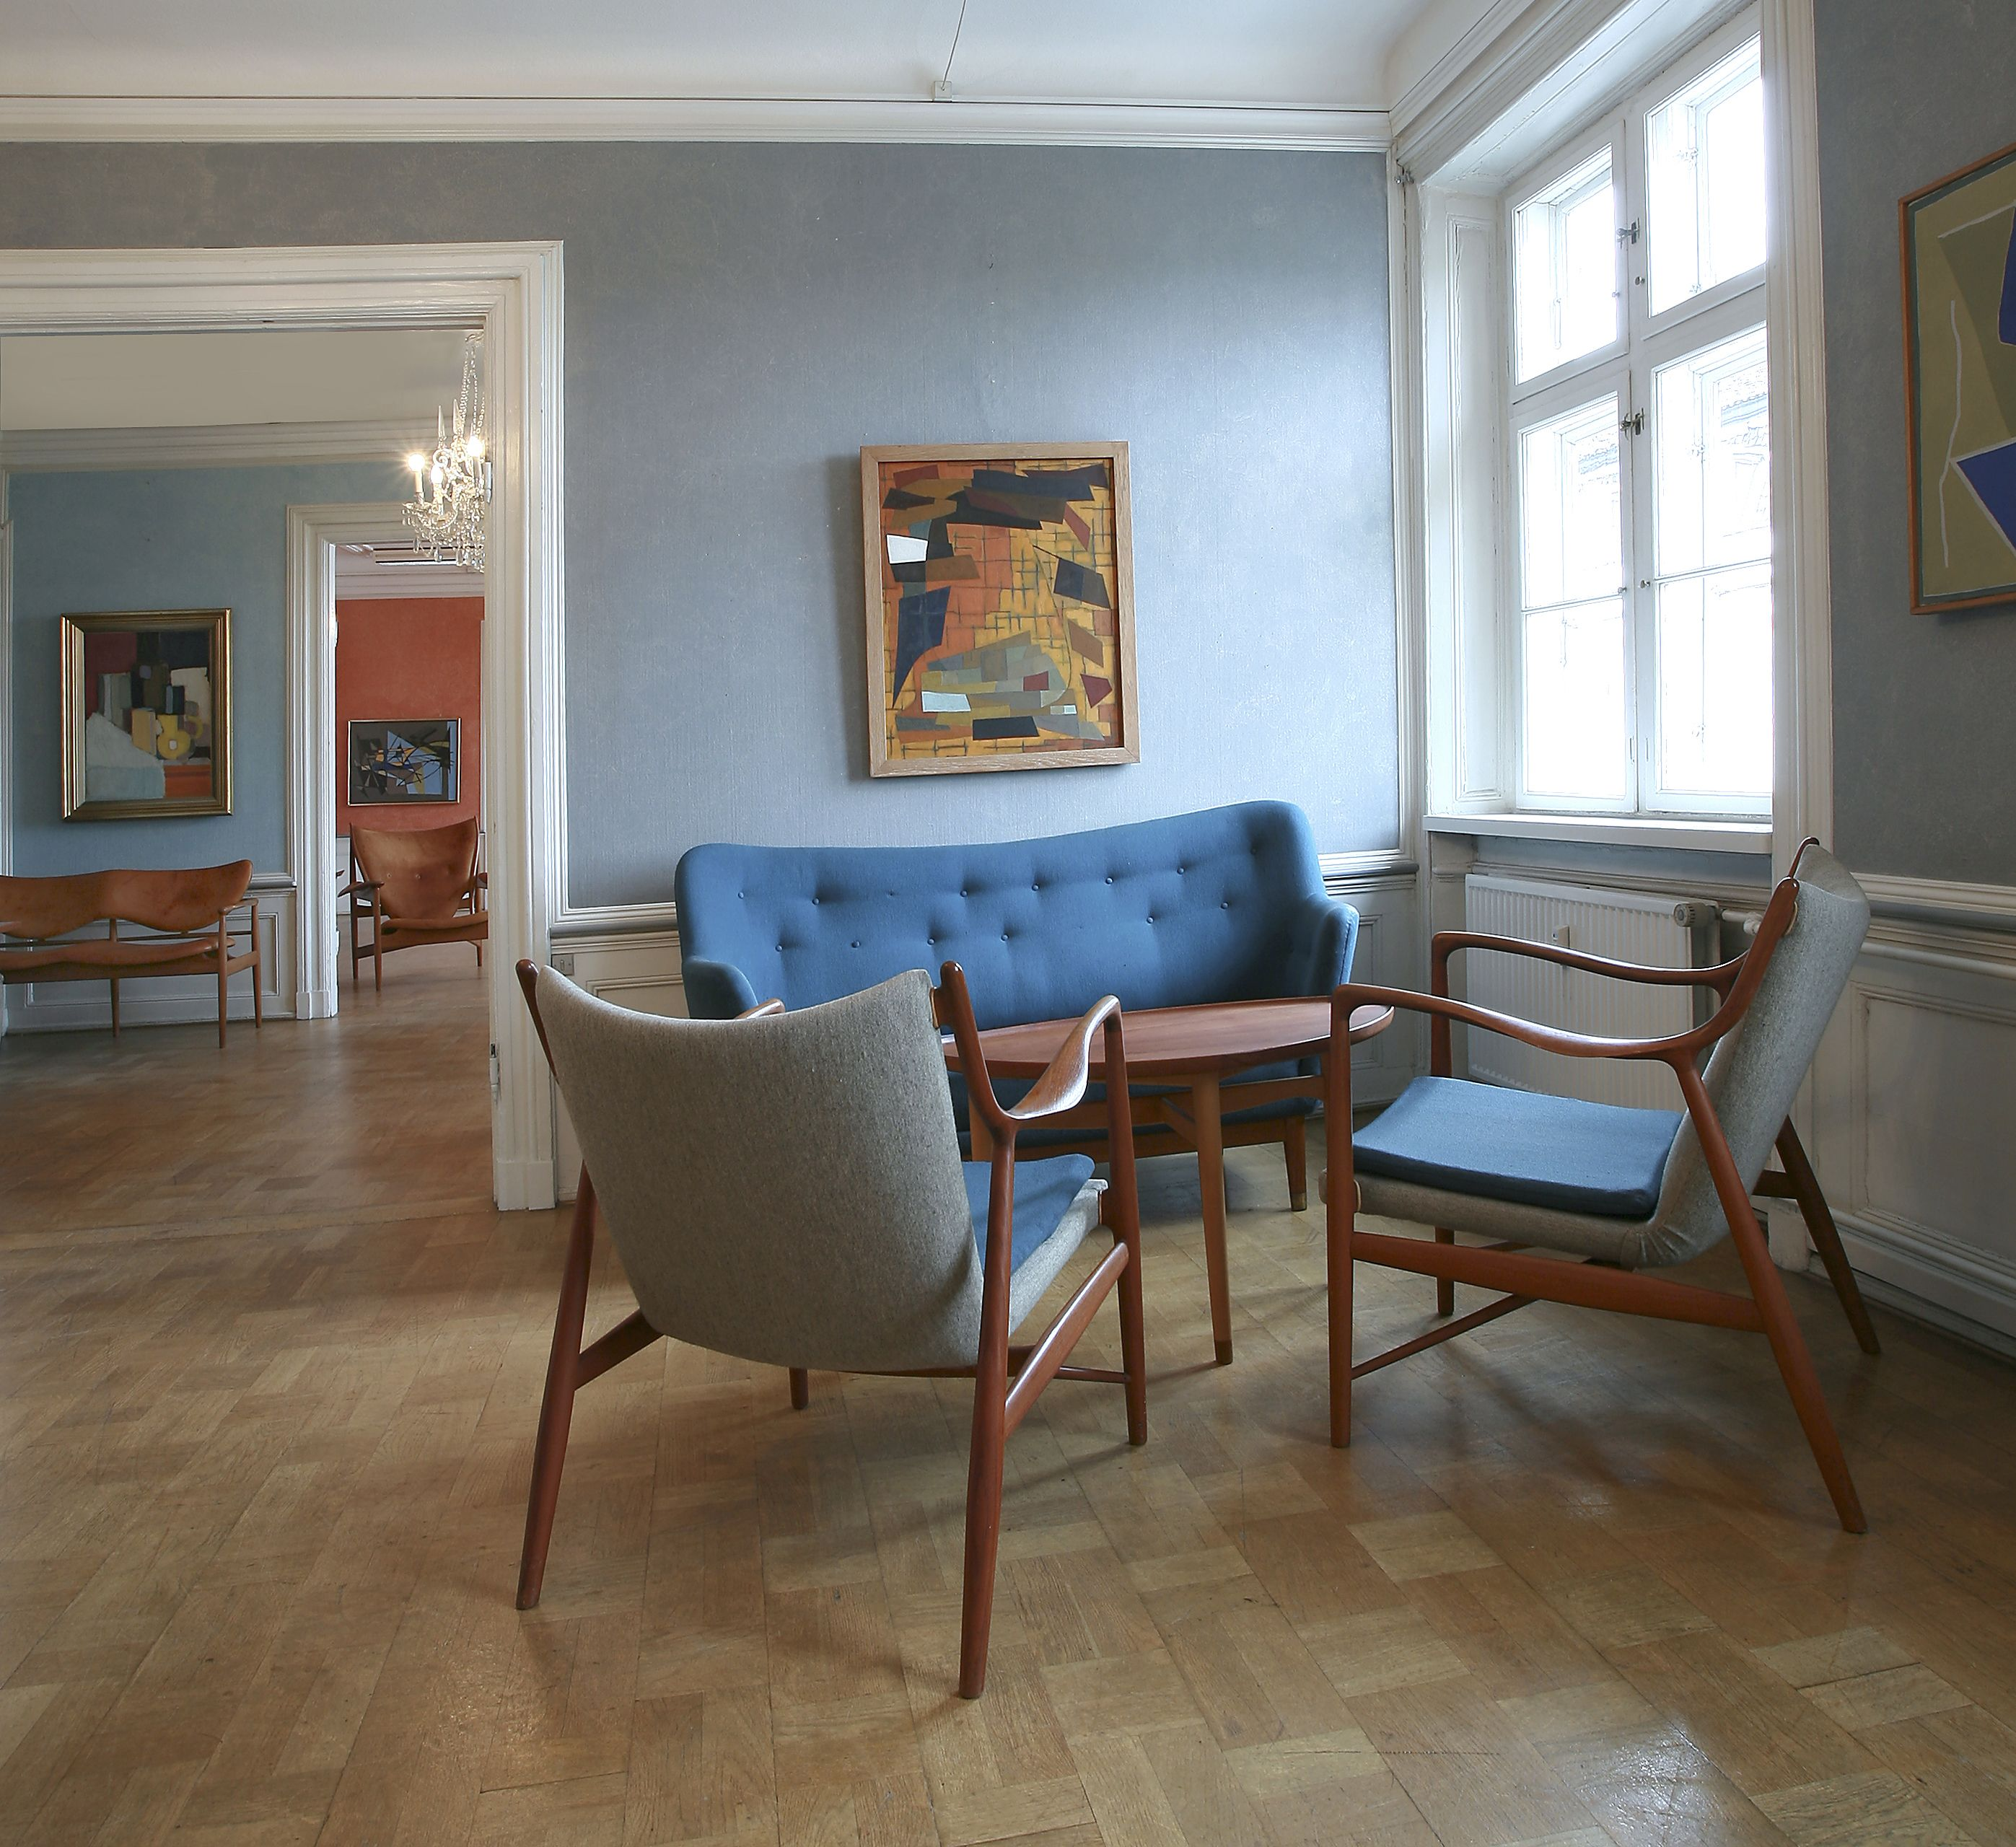 Finn juhl the baker sofa - Interior At The Auction House With Furniture By Finn Juhl And Paintings By Vilhelm Lundstr M